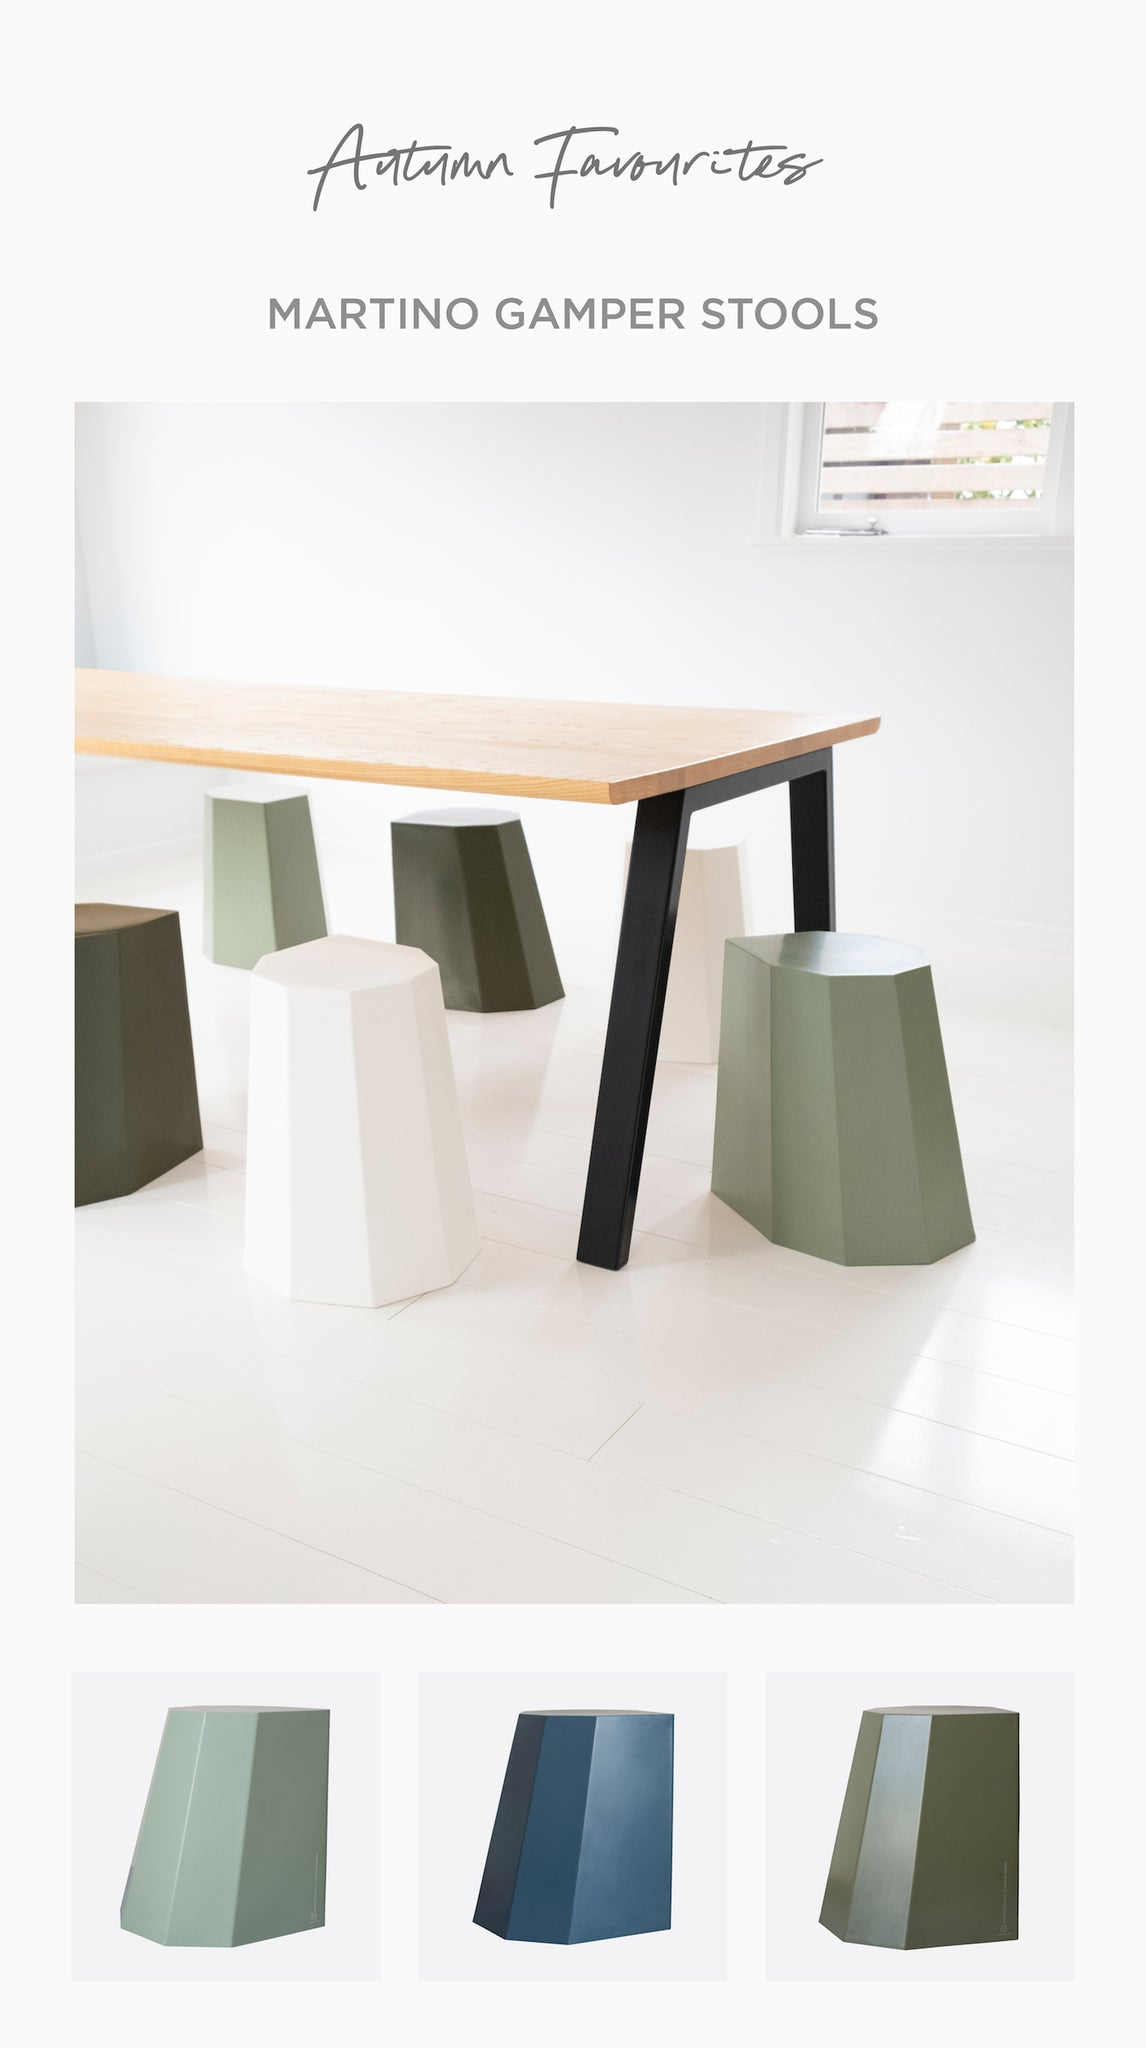 Paper Plane - Marinto Gamper Stools - Made in NZ